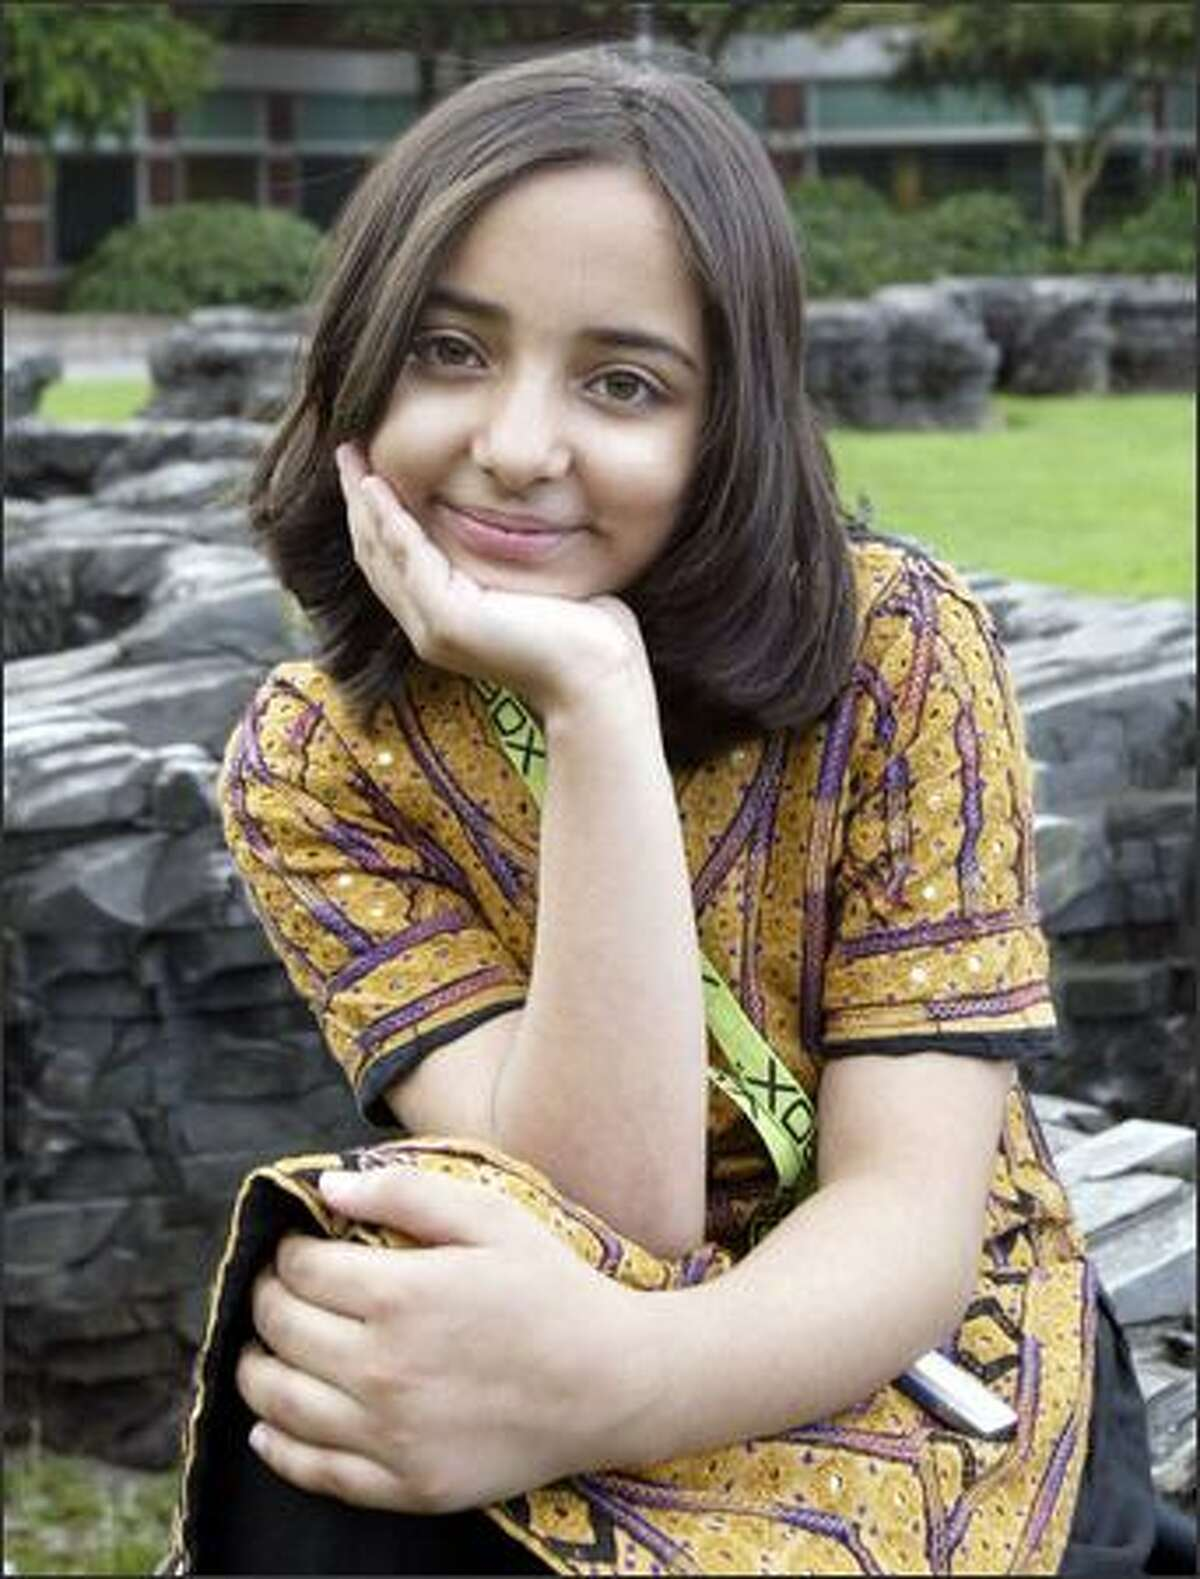 Ten-year-old Arfa Karim Randhawa of Pakistan, believed to be the youngest person in the world to have earned Microsoft Certified Professional status, visits the company's Redmond campus.